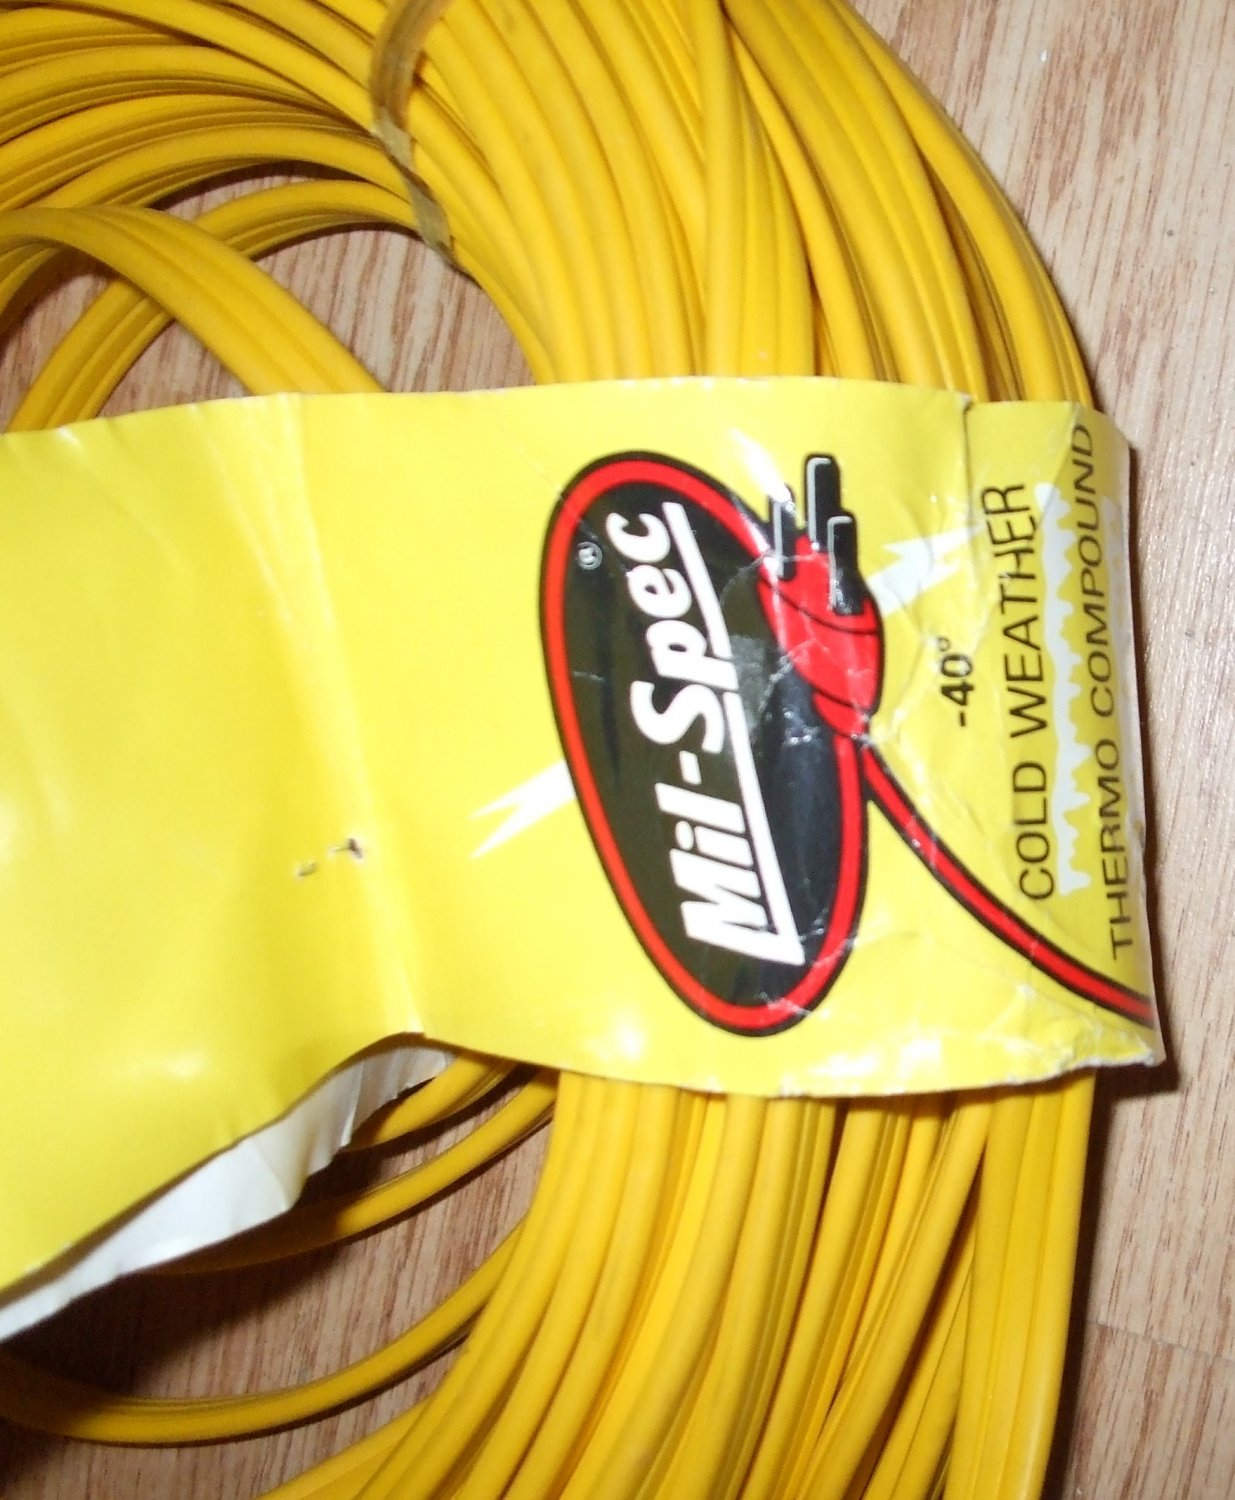 Extention Cord Sale 100ft Yellow Flat Extension Cord Vendor Mill